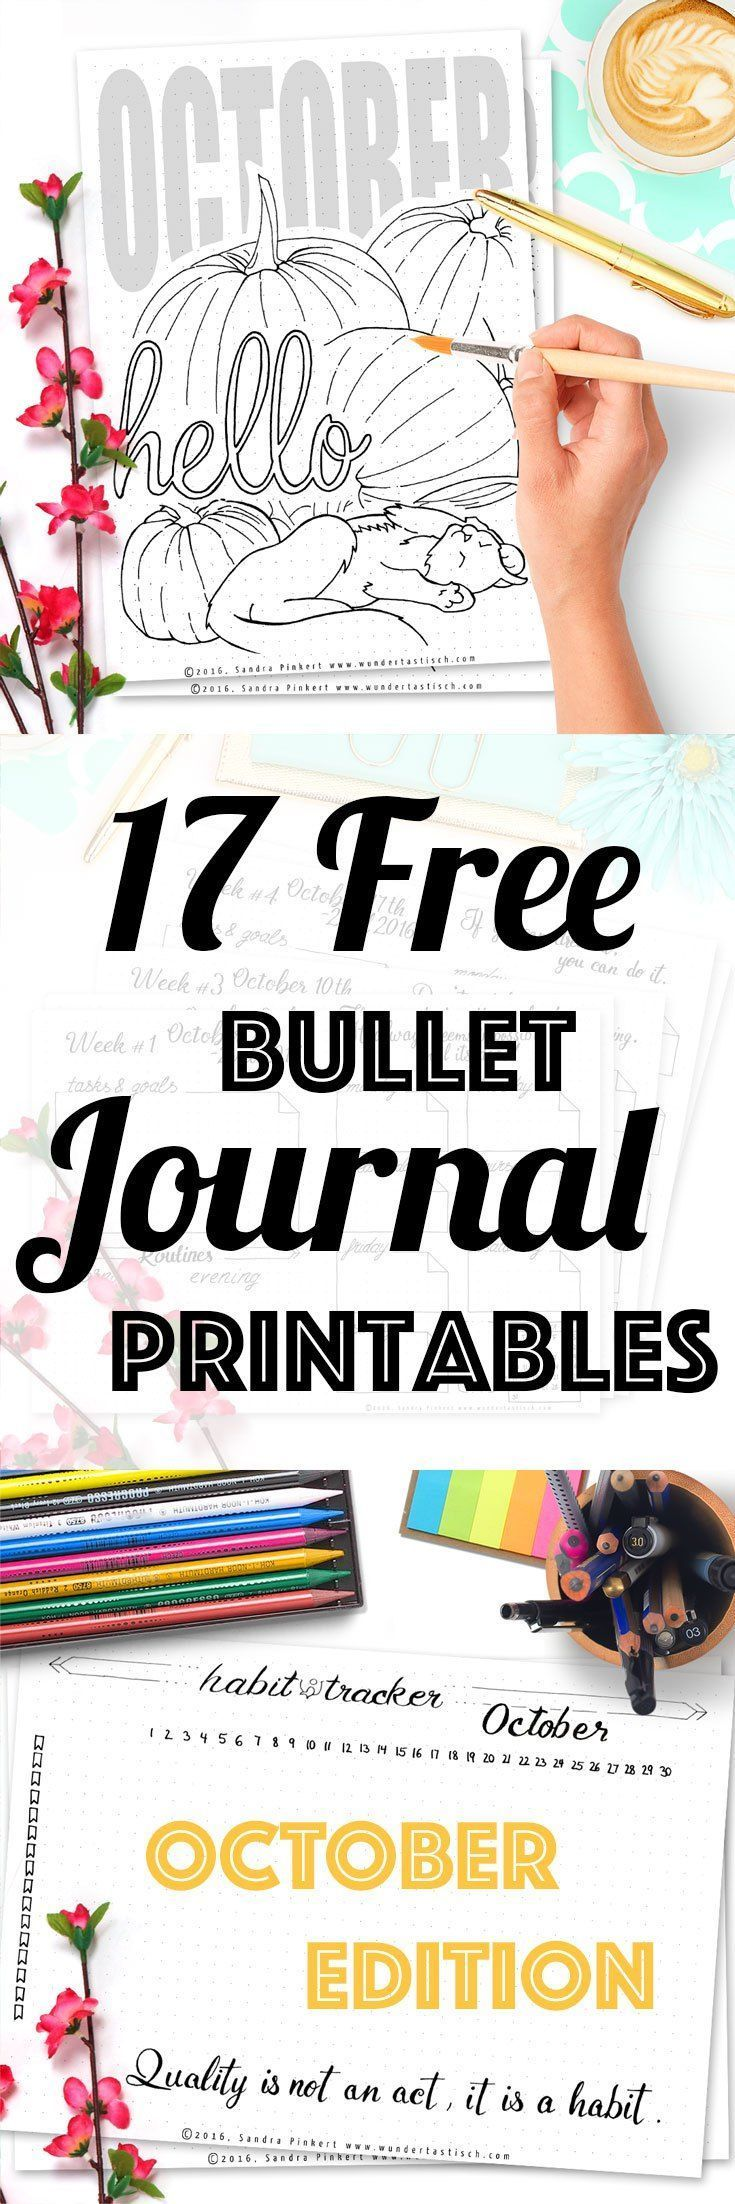 17 Free Printable Pages For Your Bullet Journal SetUp October 2016. Including Habit Tracker, October Memories, Monthly Log and many more beautiful pages.